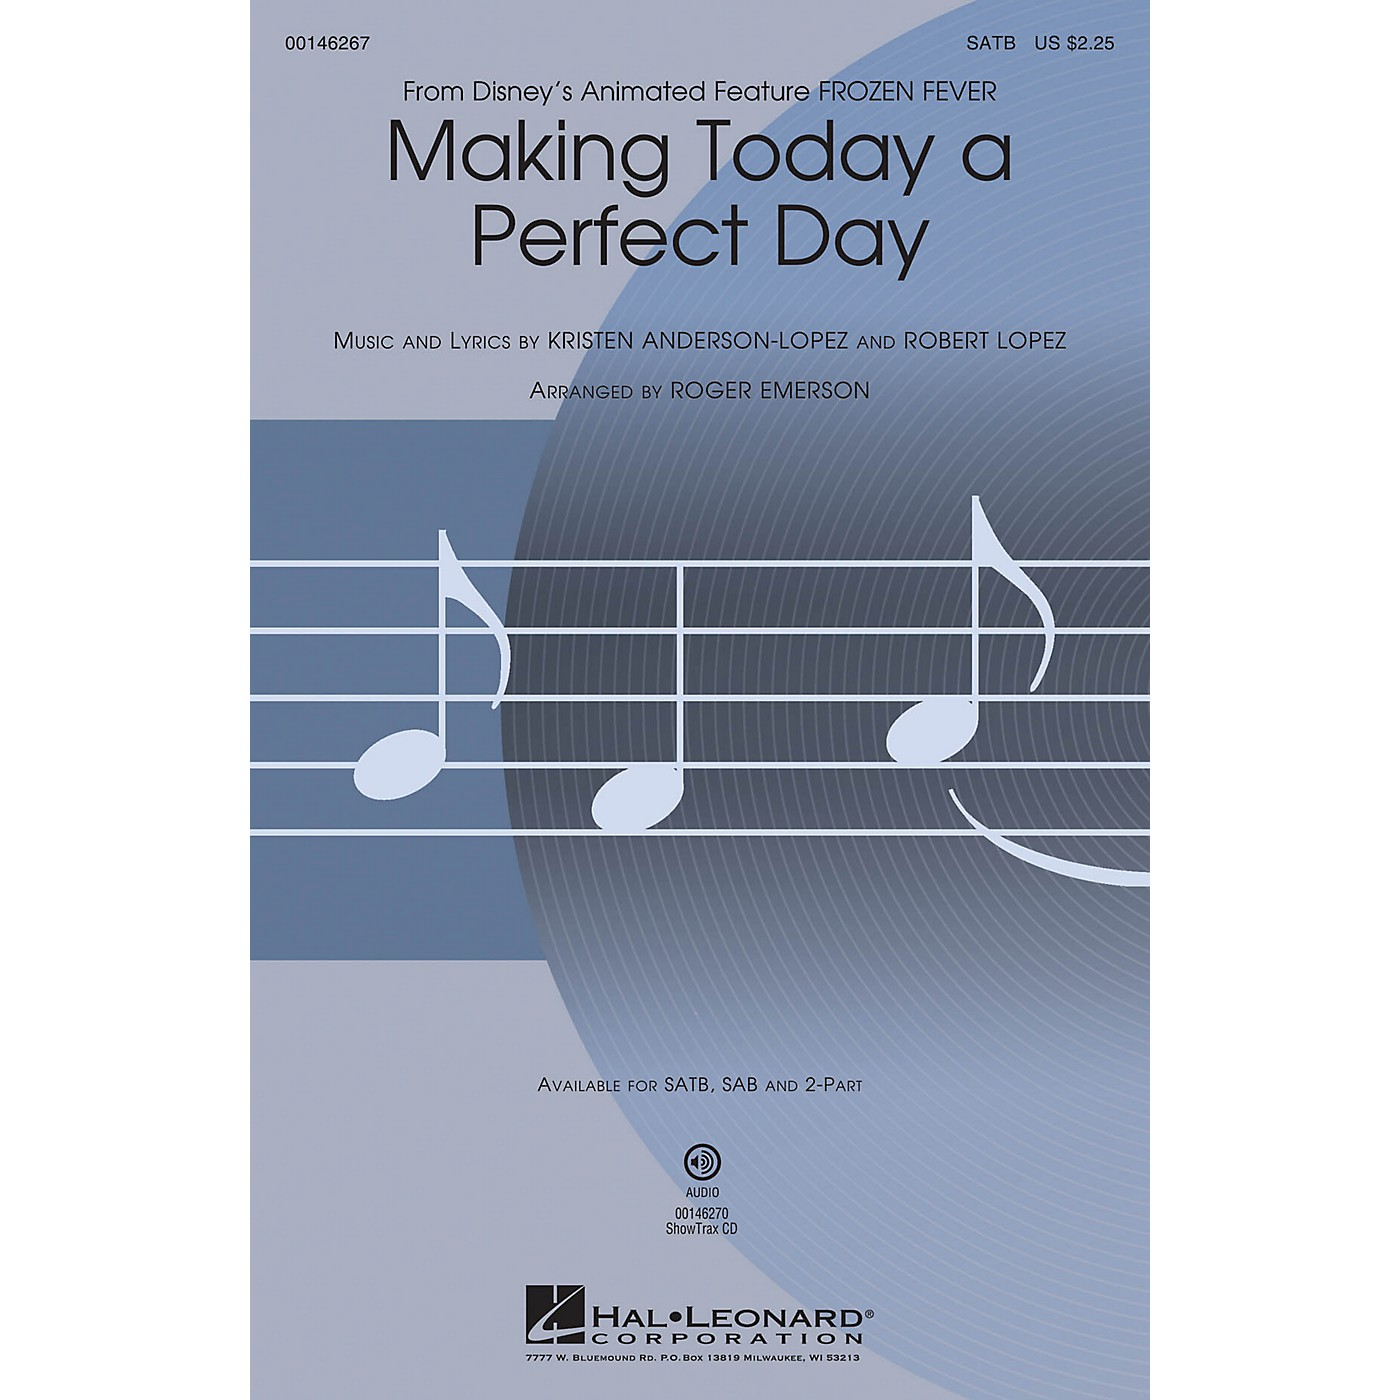 Hal Leonard Making Today a Perfect Day (from Frozen Fever) ShowTrax CD Arranged by Roger Emerson thumbnail